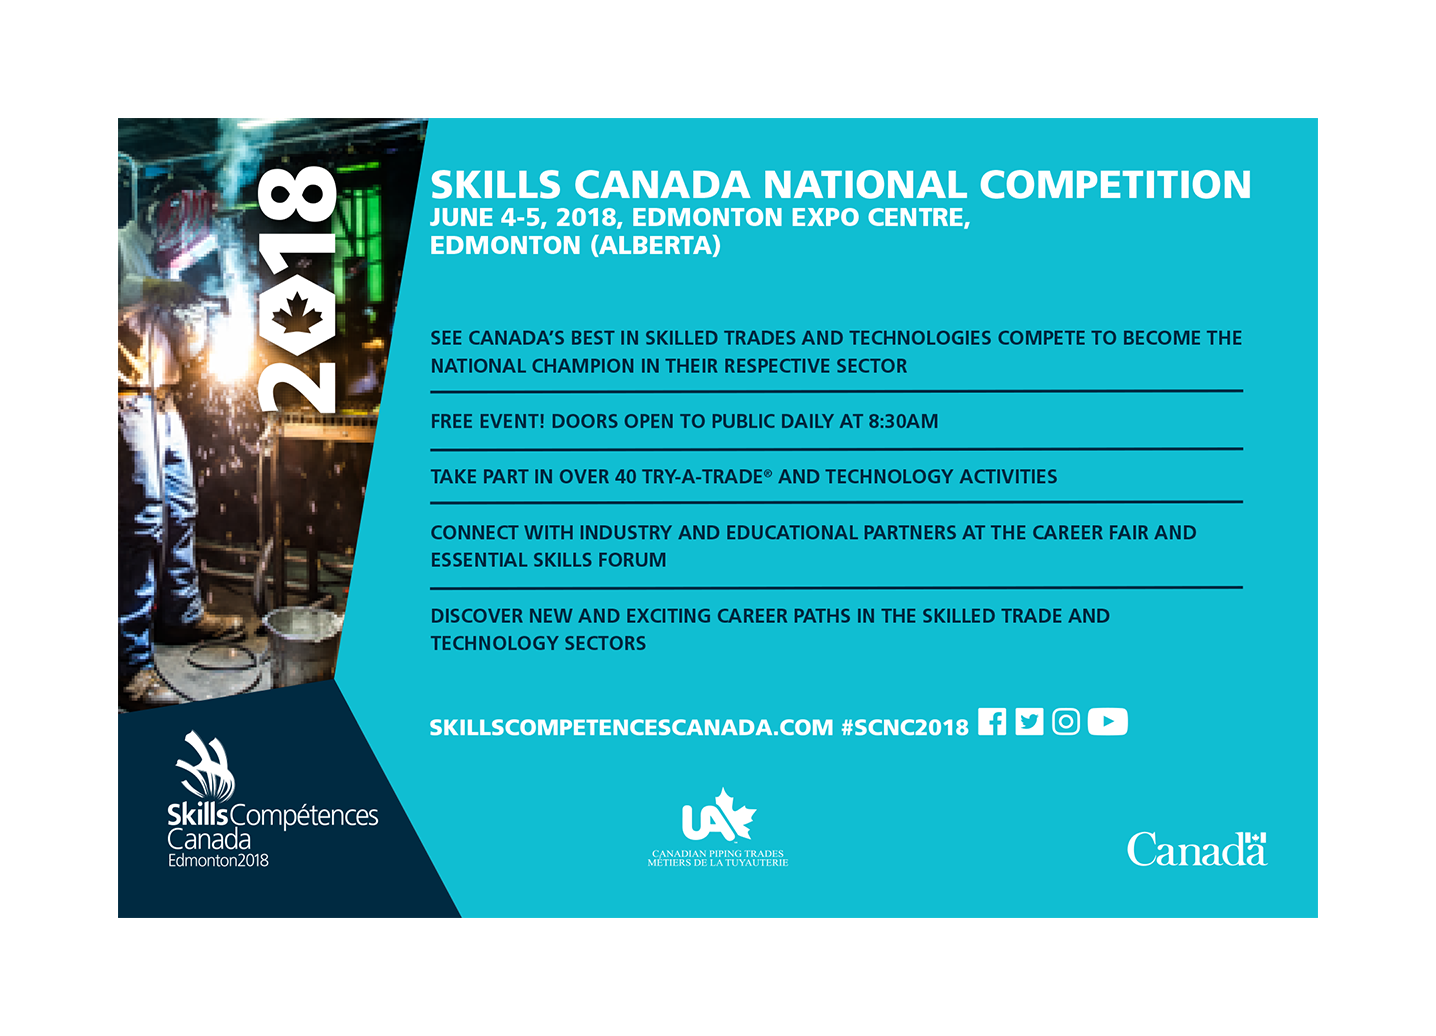 Skills Canada National Competition